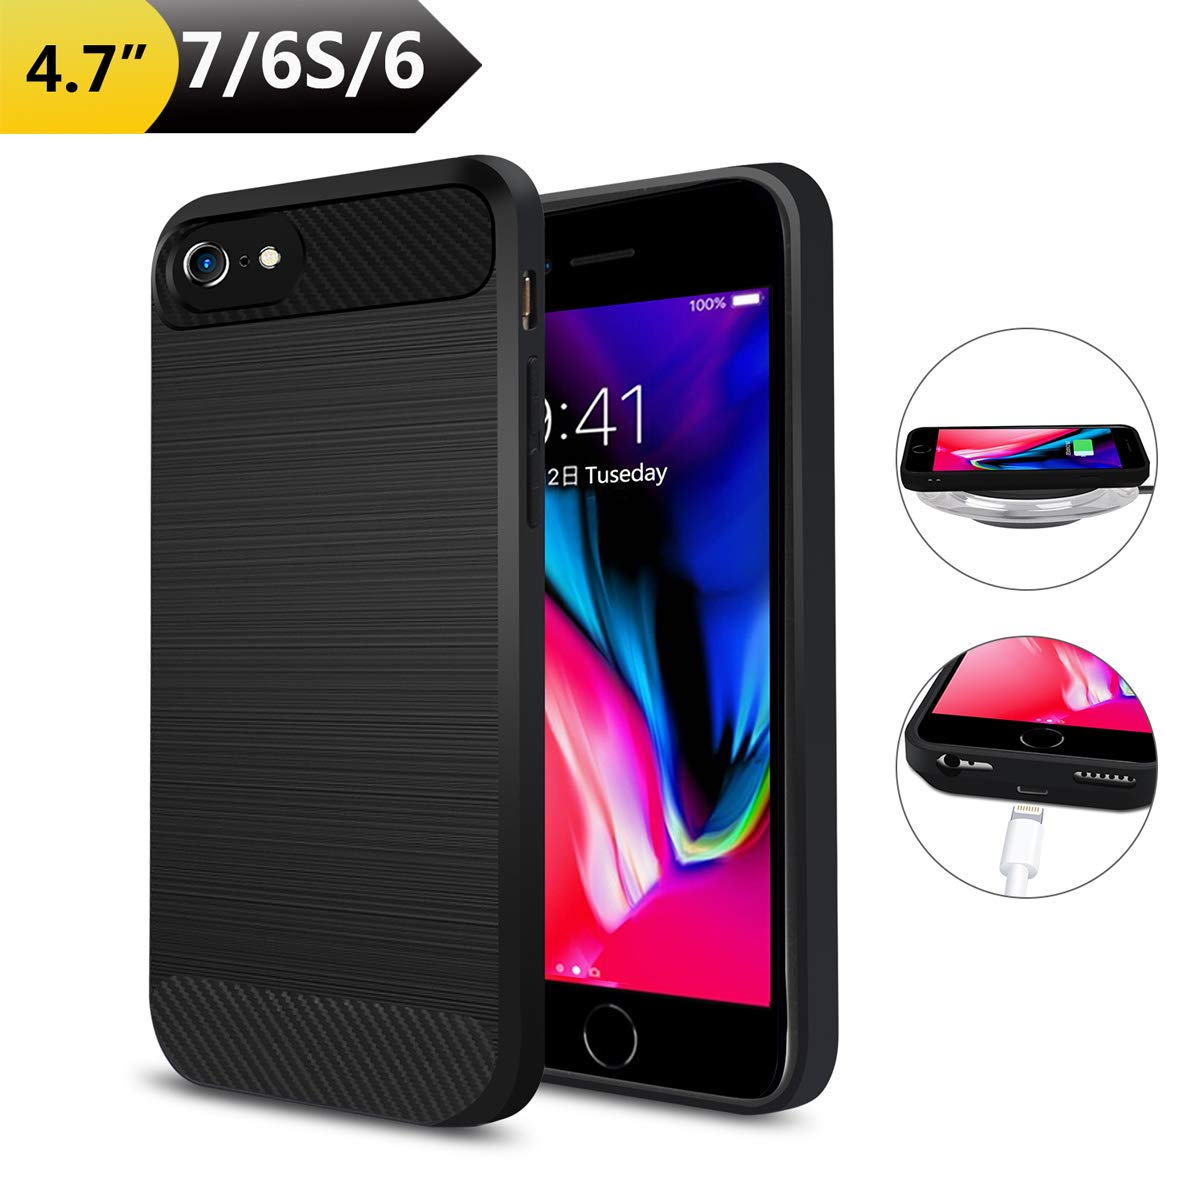 Qi Wireless Charging Case for iPhone 7/6(Not Battery), ANGELIOX Wireless Charger Charging Receiver Back Cover,Soft TPU Protective Case,Brushed Surface Finish,with Cable Charging Port(4.7 inch) by ANGELIOX